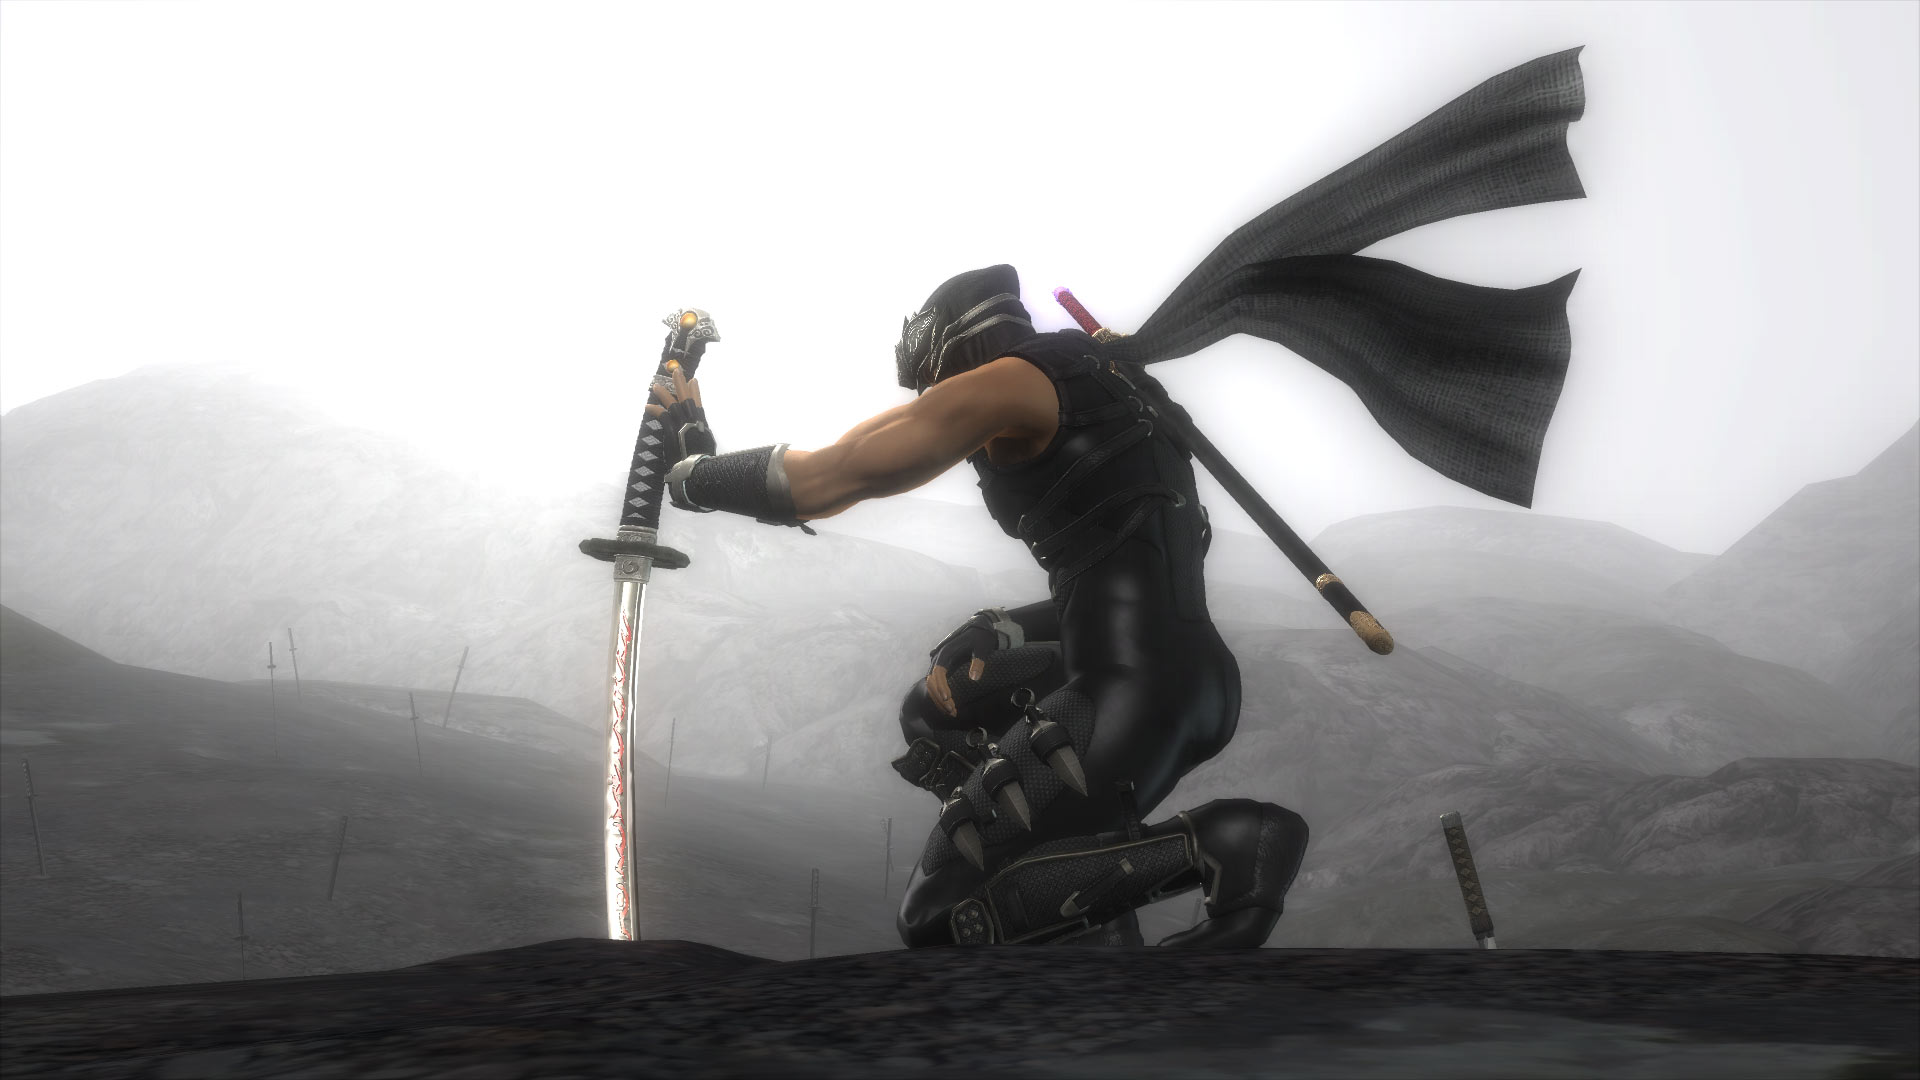 A New Ninja Gaiden Game May Soon Enter Development